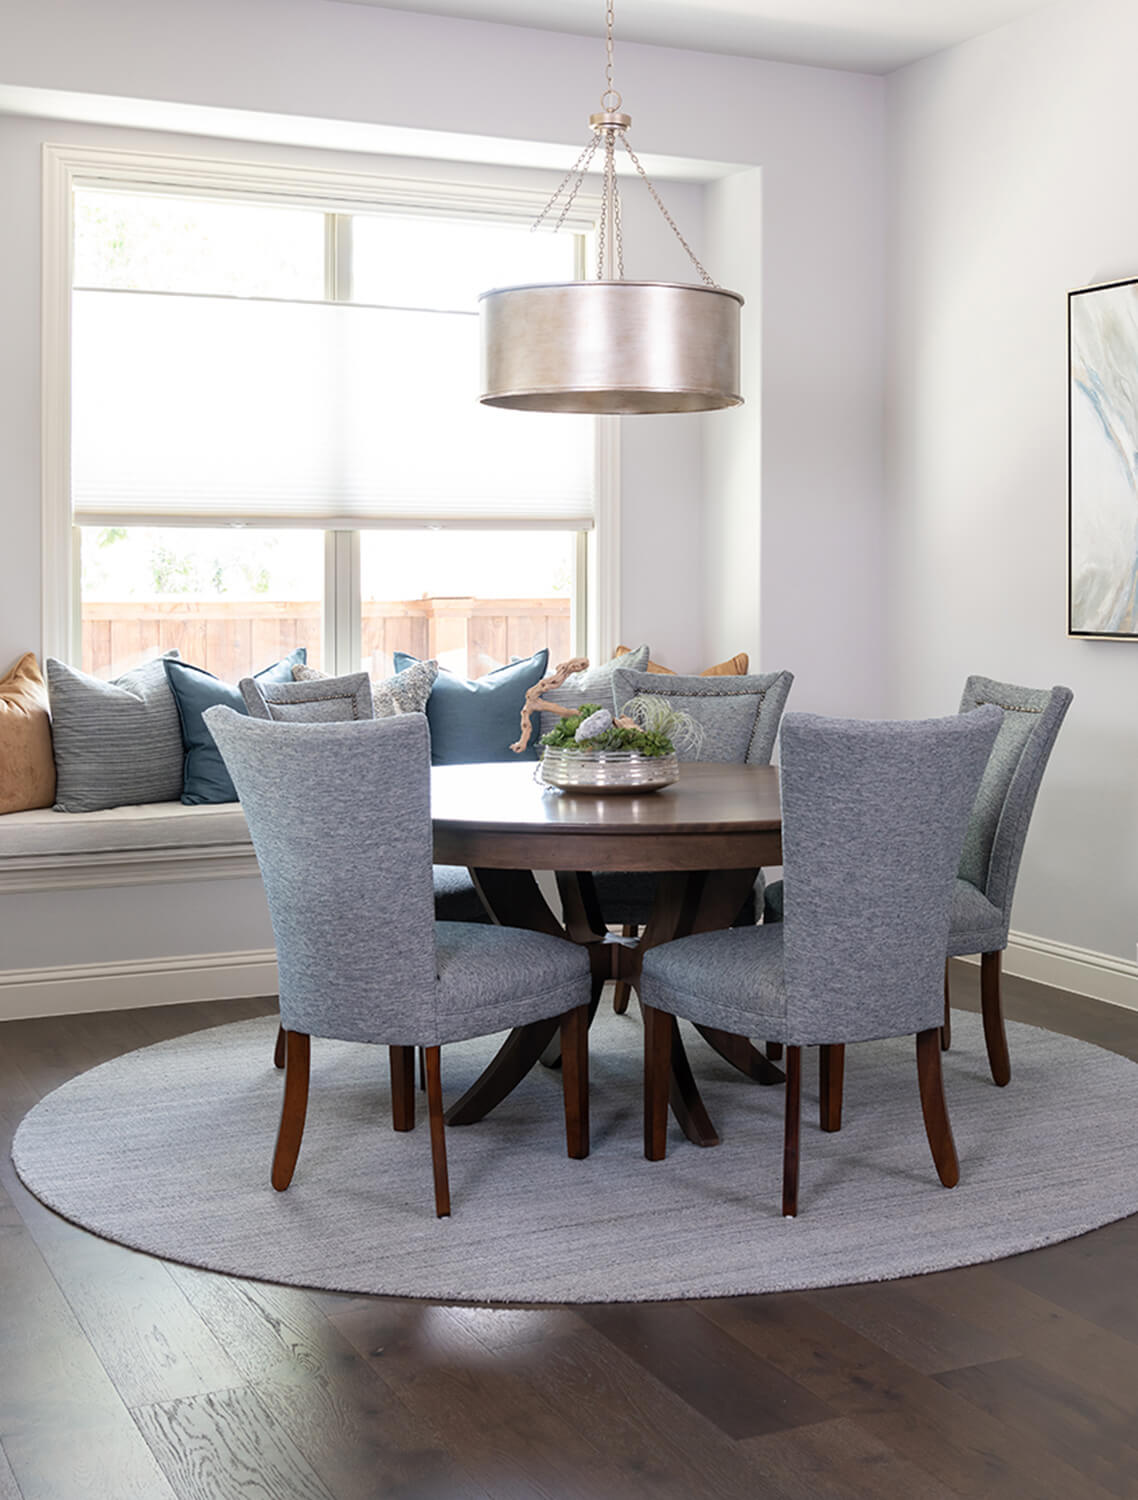 A whole home furnishings project in Flower Mound, Texas